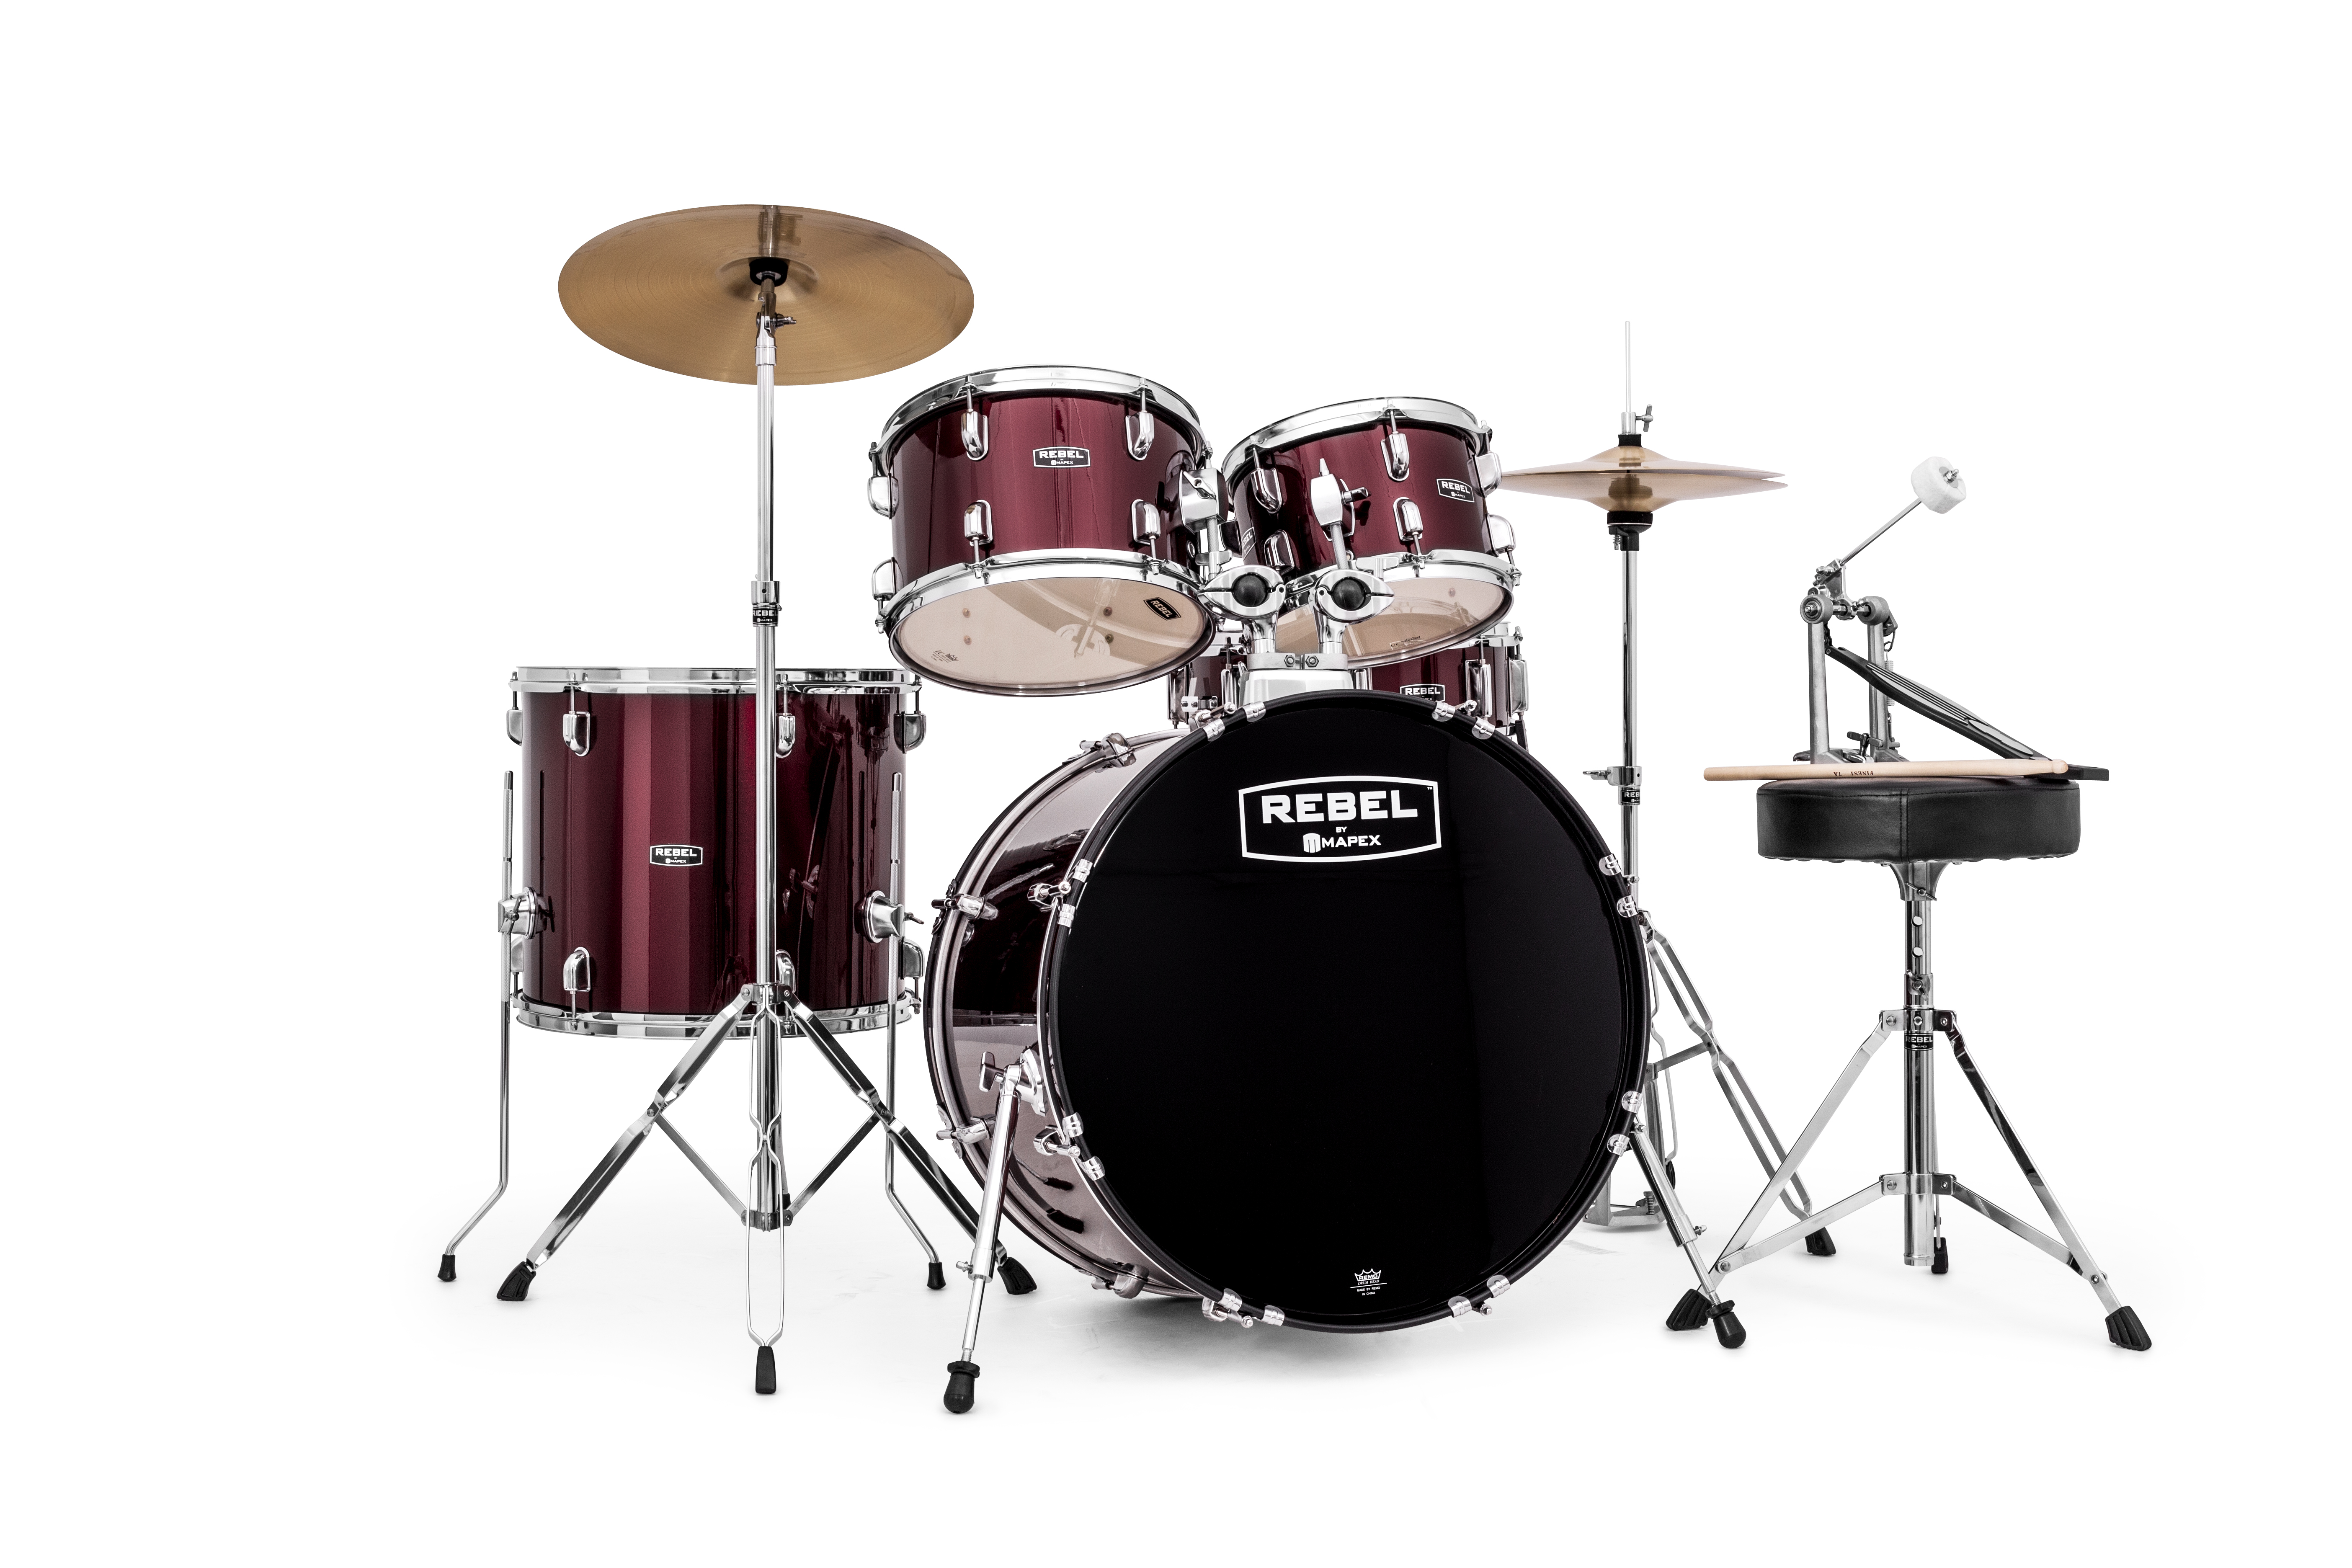 Mapex Rebel 5-piece SRO Complete Set Up with Fast Size Toms - RB5294FTCDR - Dark Red